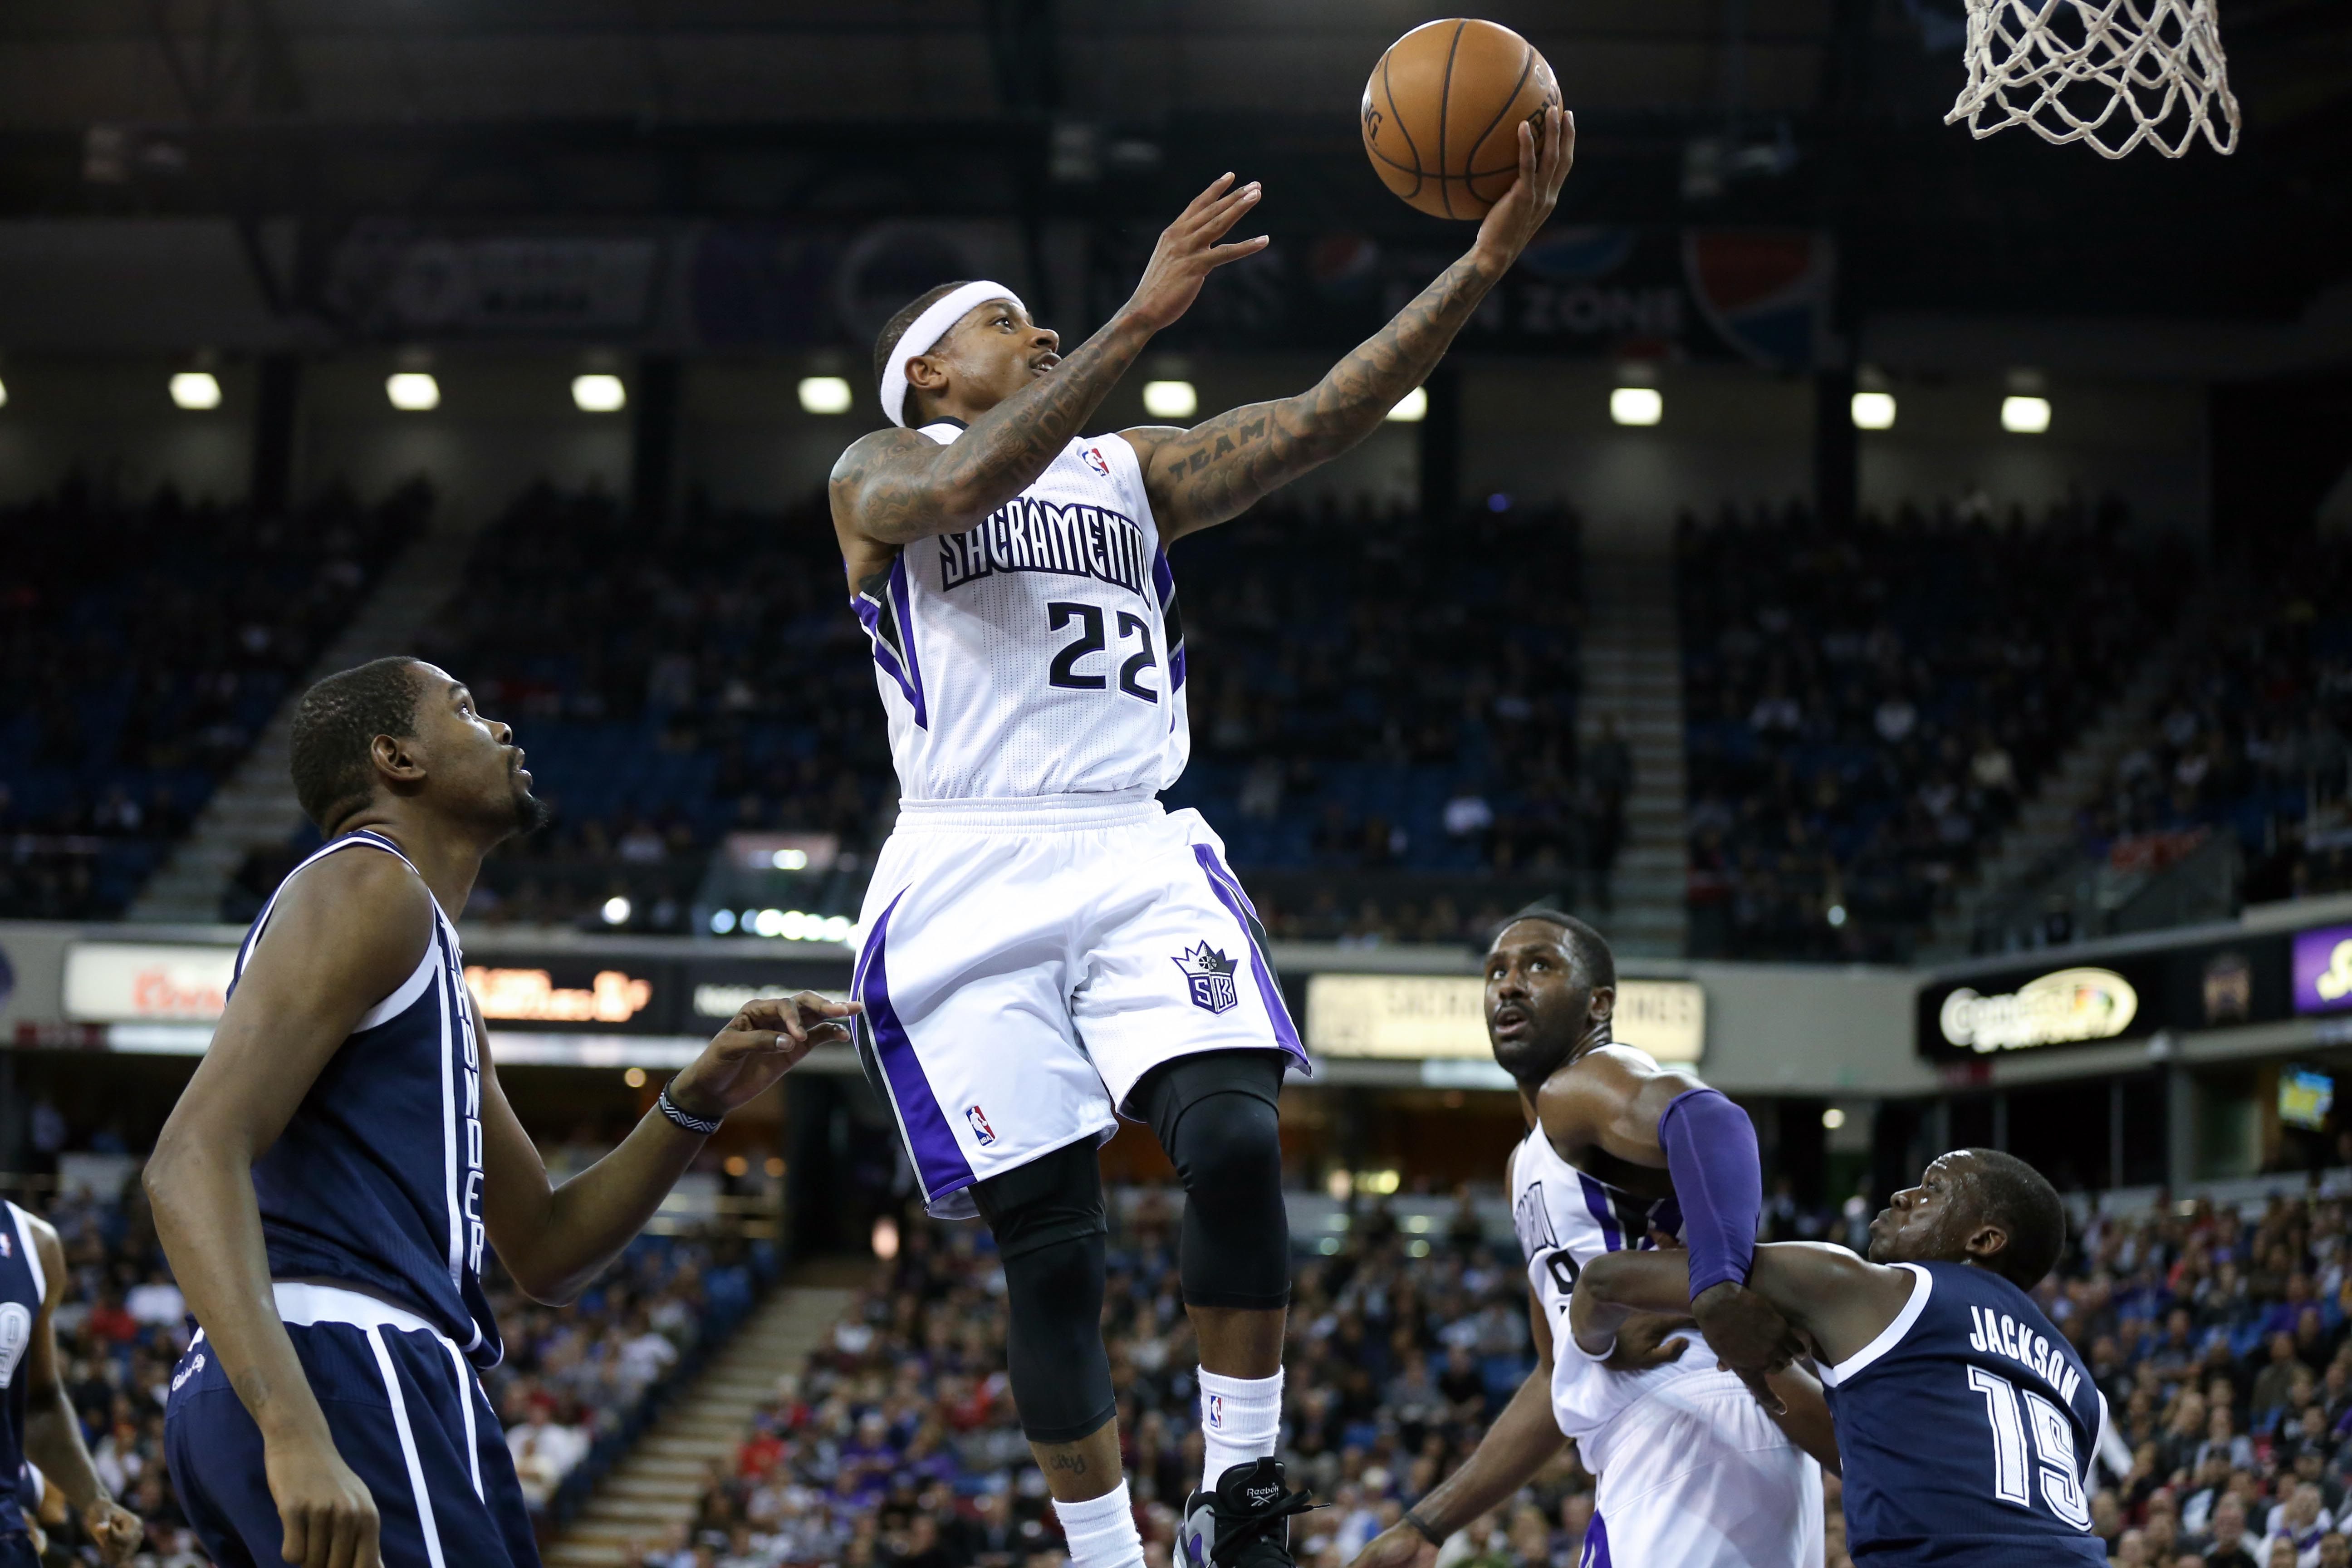 Dec 3, 2013; Sacramento, CA, USA; Sacramento Kings point guard Isaiah Thomas (22) goes up for a basket above Oklahoma City Thunder small forward Kevin Durant (35) during the fourth quarter at Sleep Train Arena. The Oklahoma City Thunder defeated the Sacramento Kings 97-95. Mandatory Credit: Kelley L Cox-USA TODAY Sports